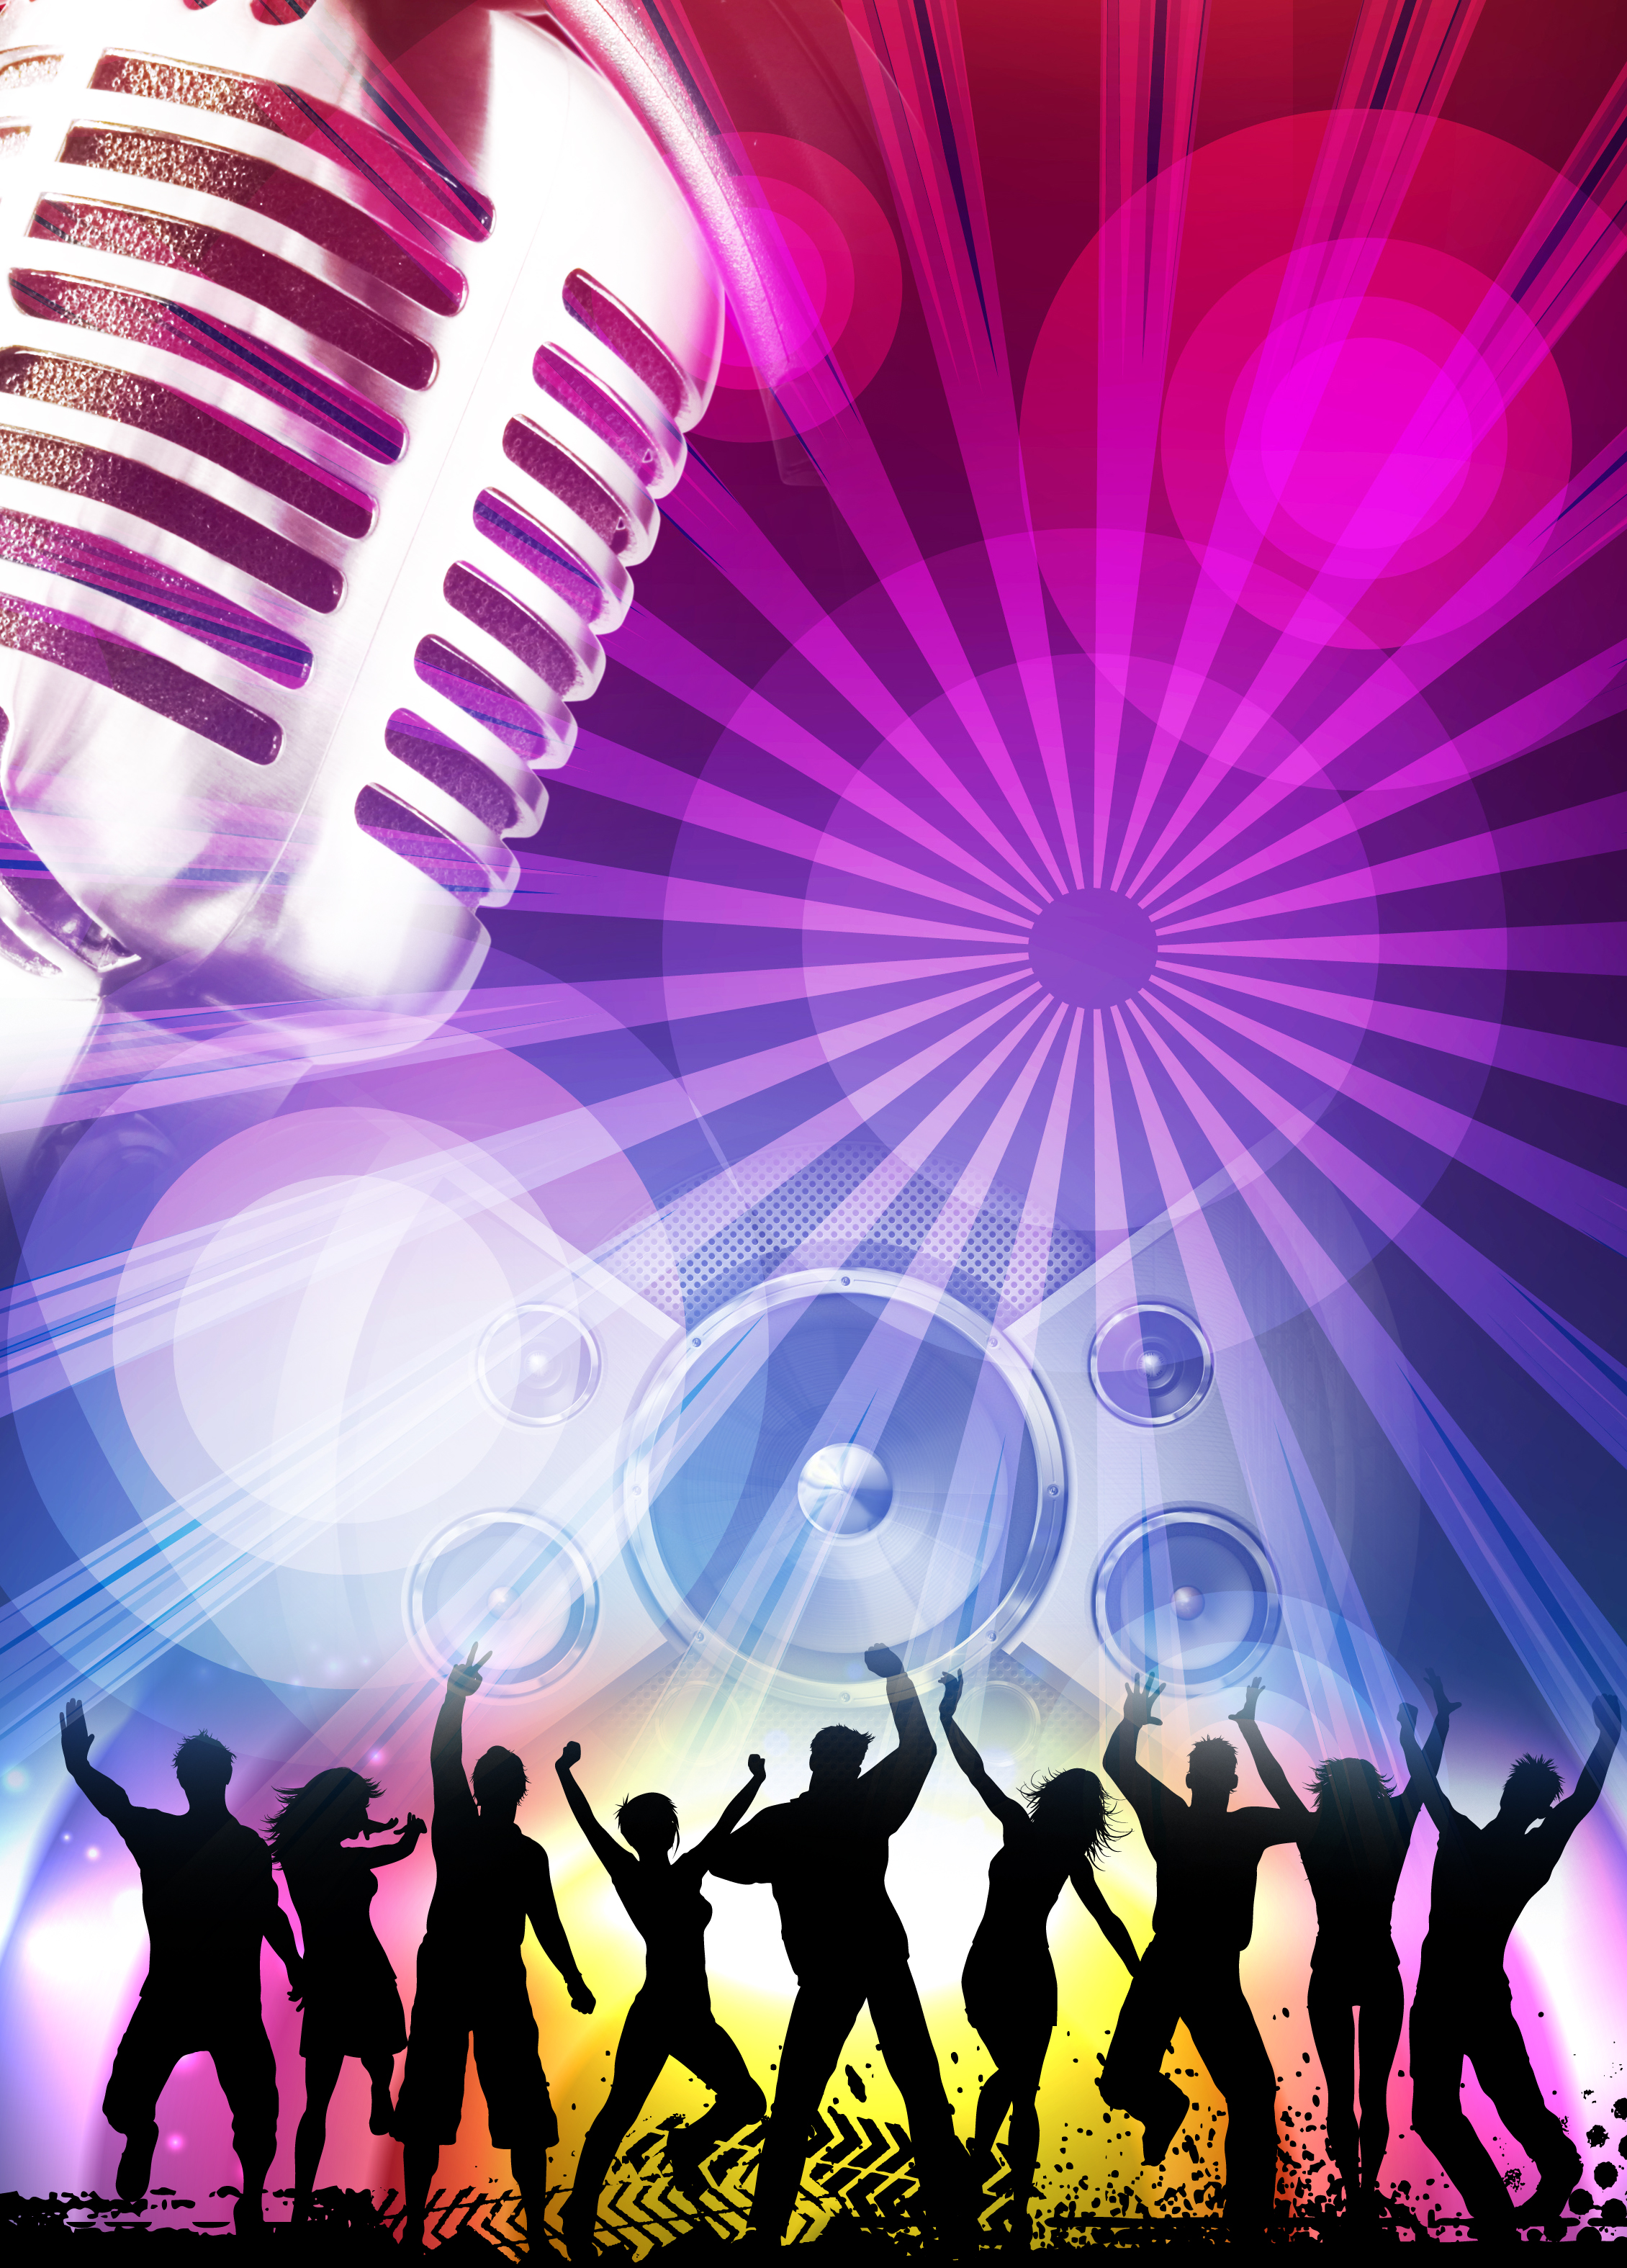 music poster background material  music  dream  creative background image for free download